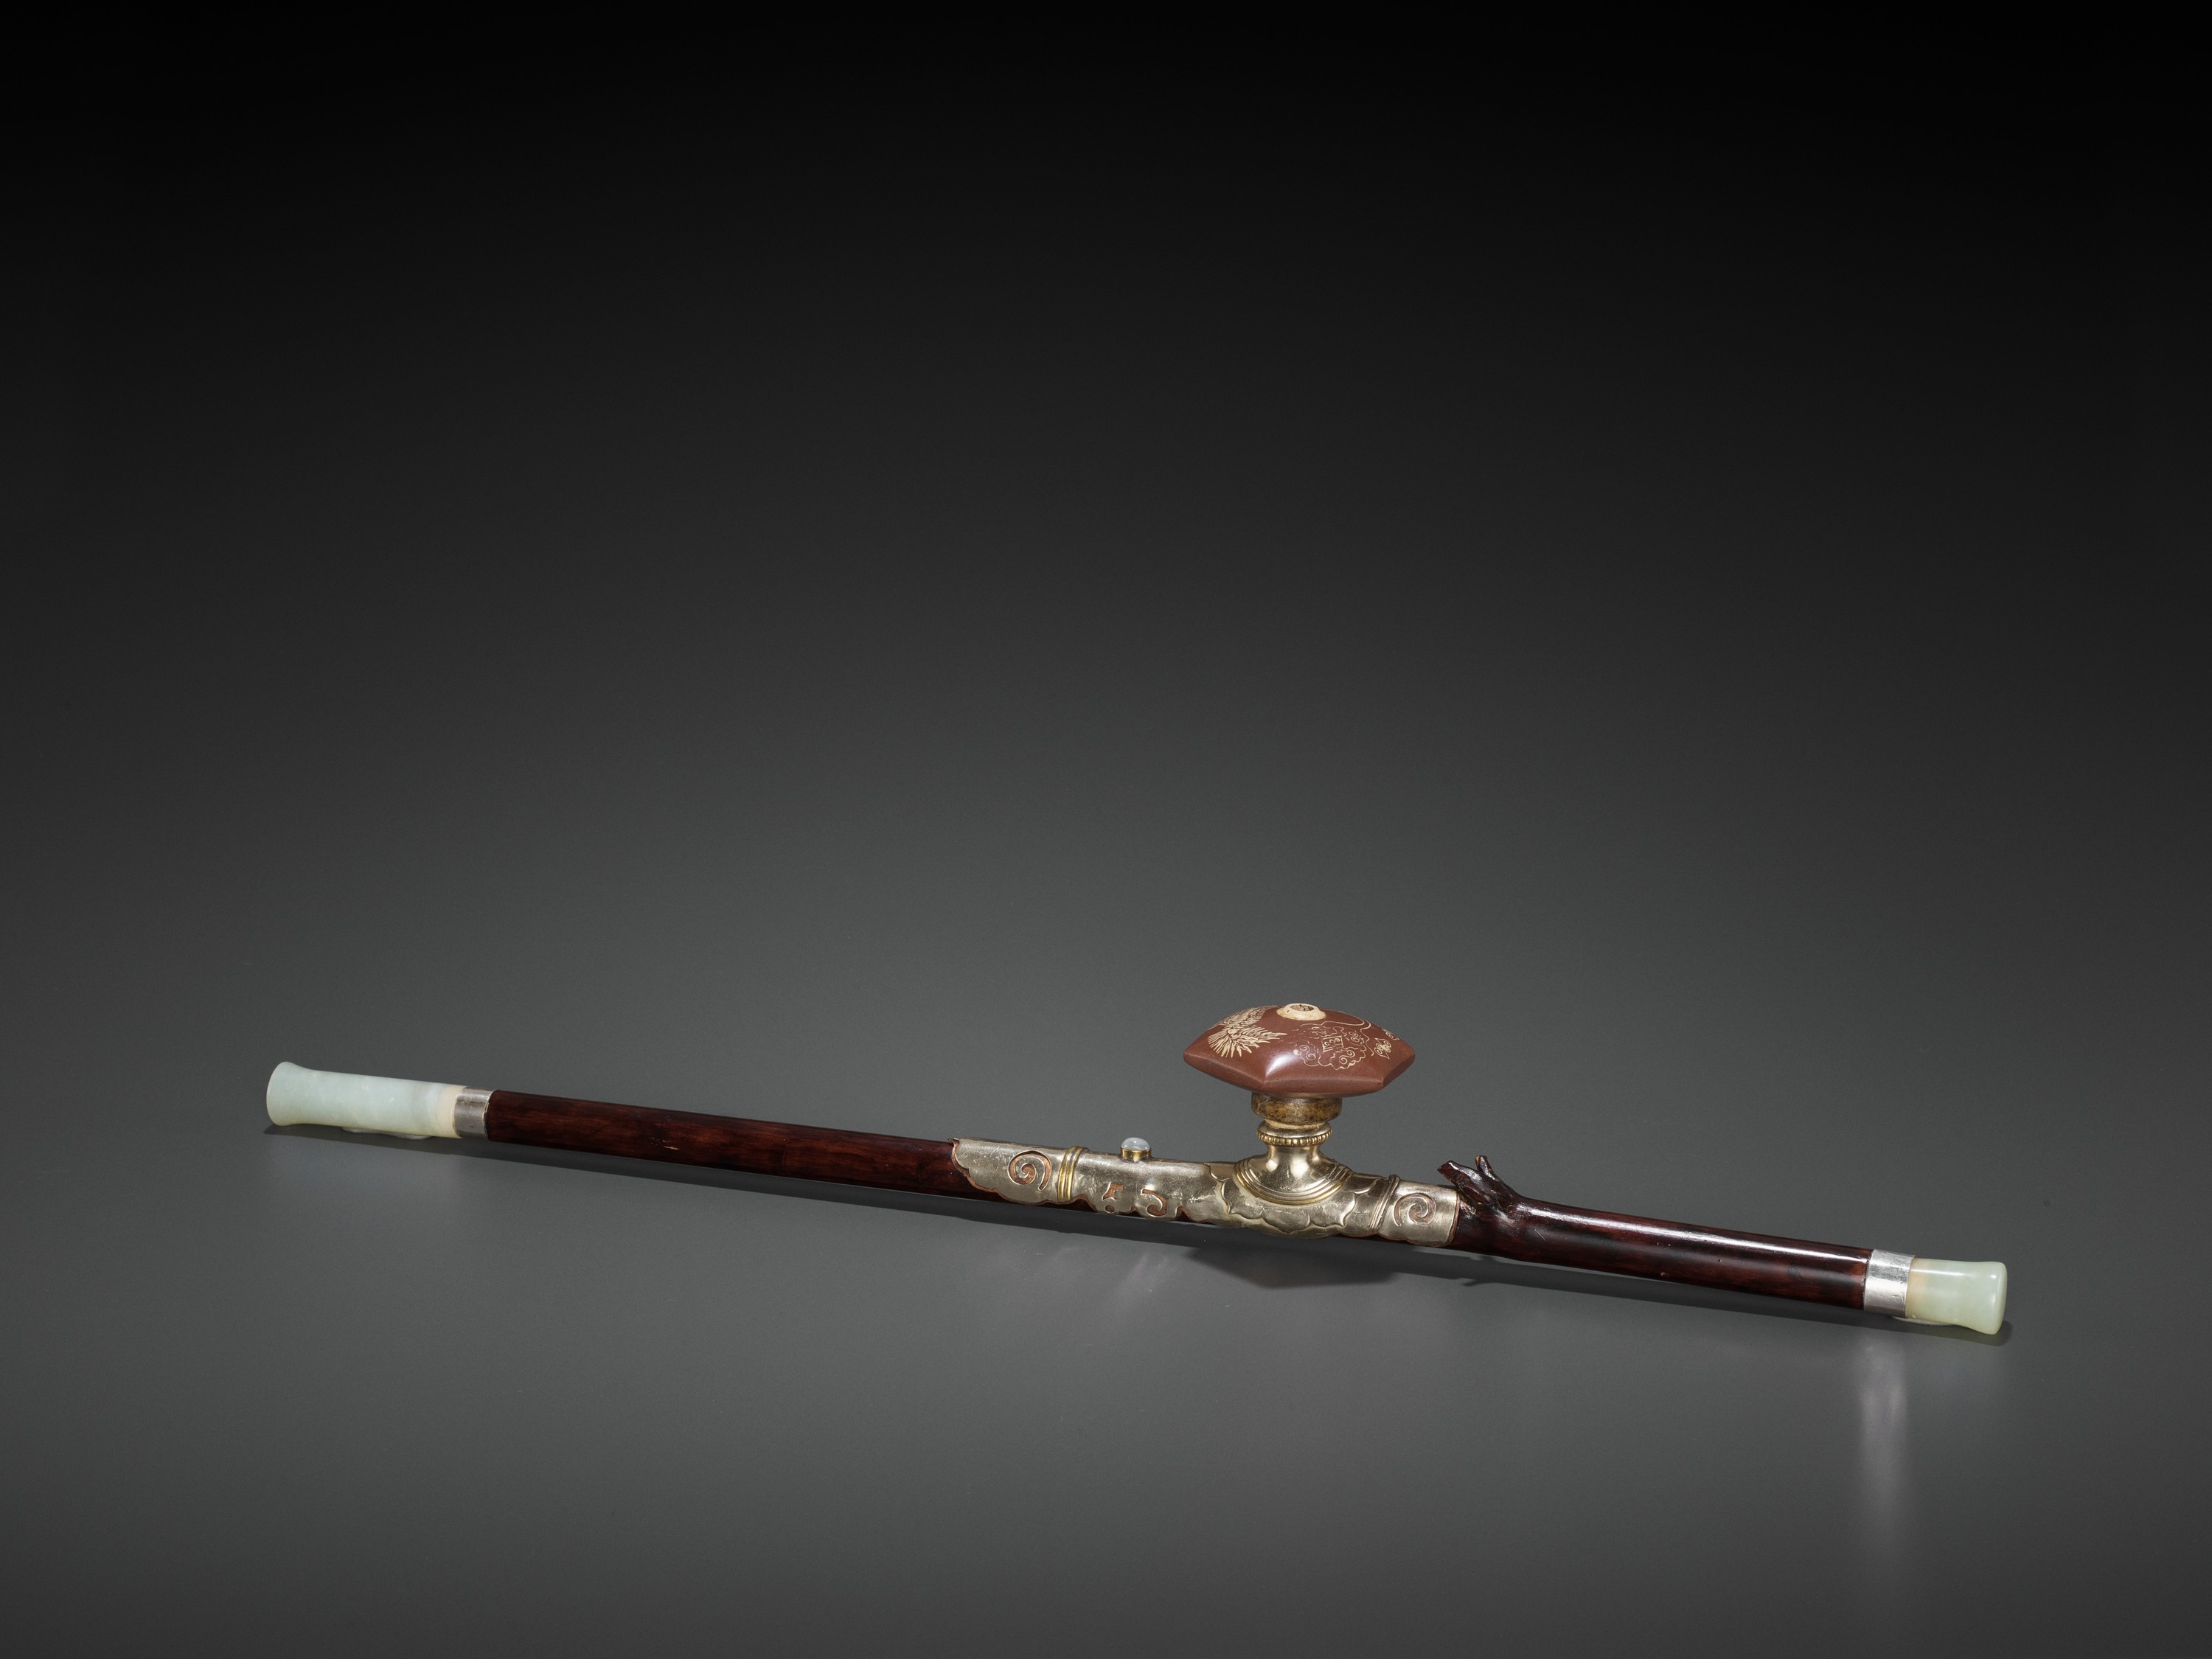 A BAMBOO OPIUM PIPE WITH HARDSTONE, SILVER AND YIXING CERAMIC FITTINGS, LATE QING TO REPUBLIC